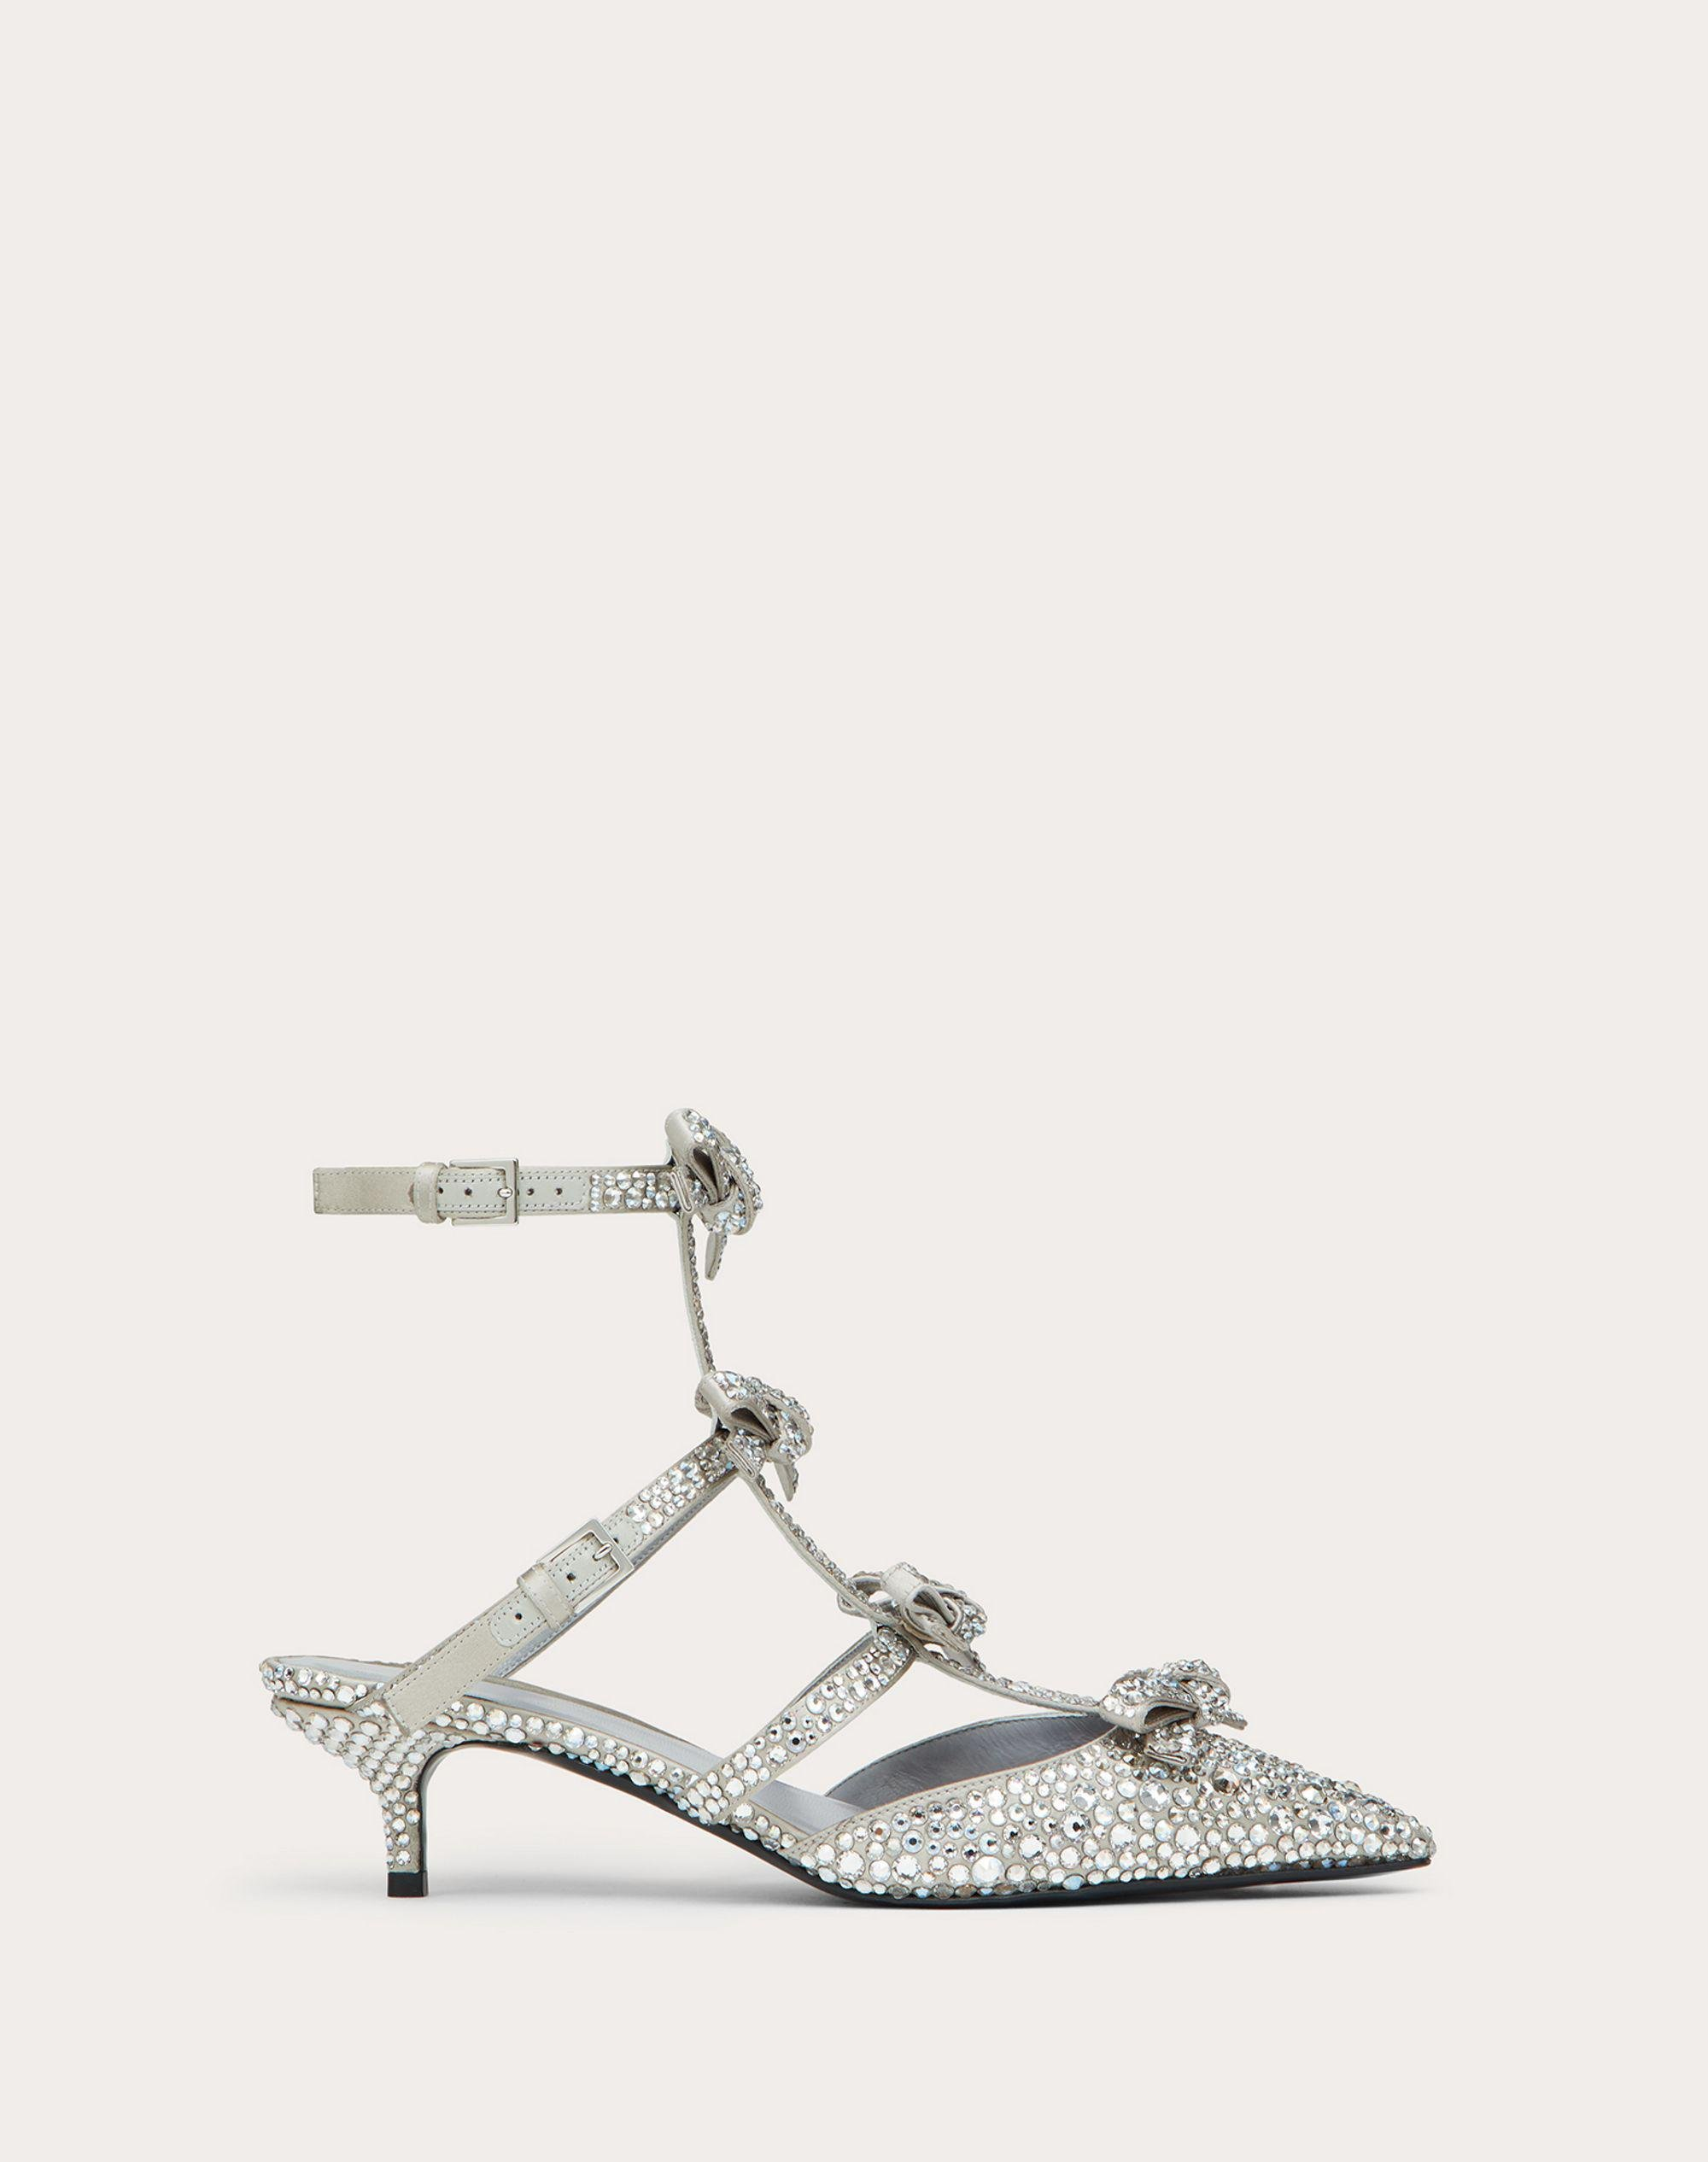 PUMP WITH FRENCH BOWS IN SATIN AND CRYSTALS   40 MM